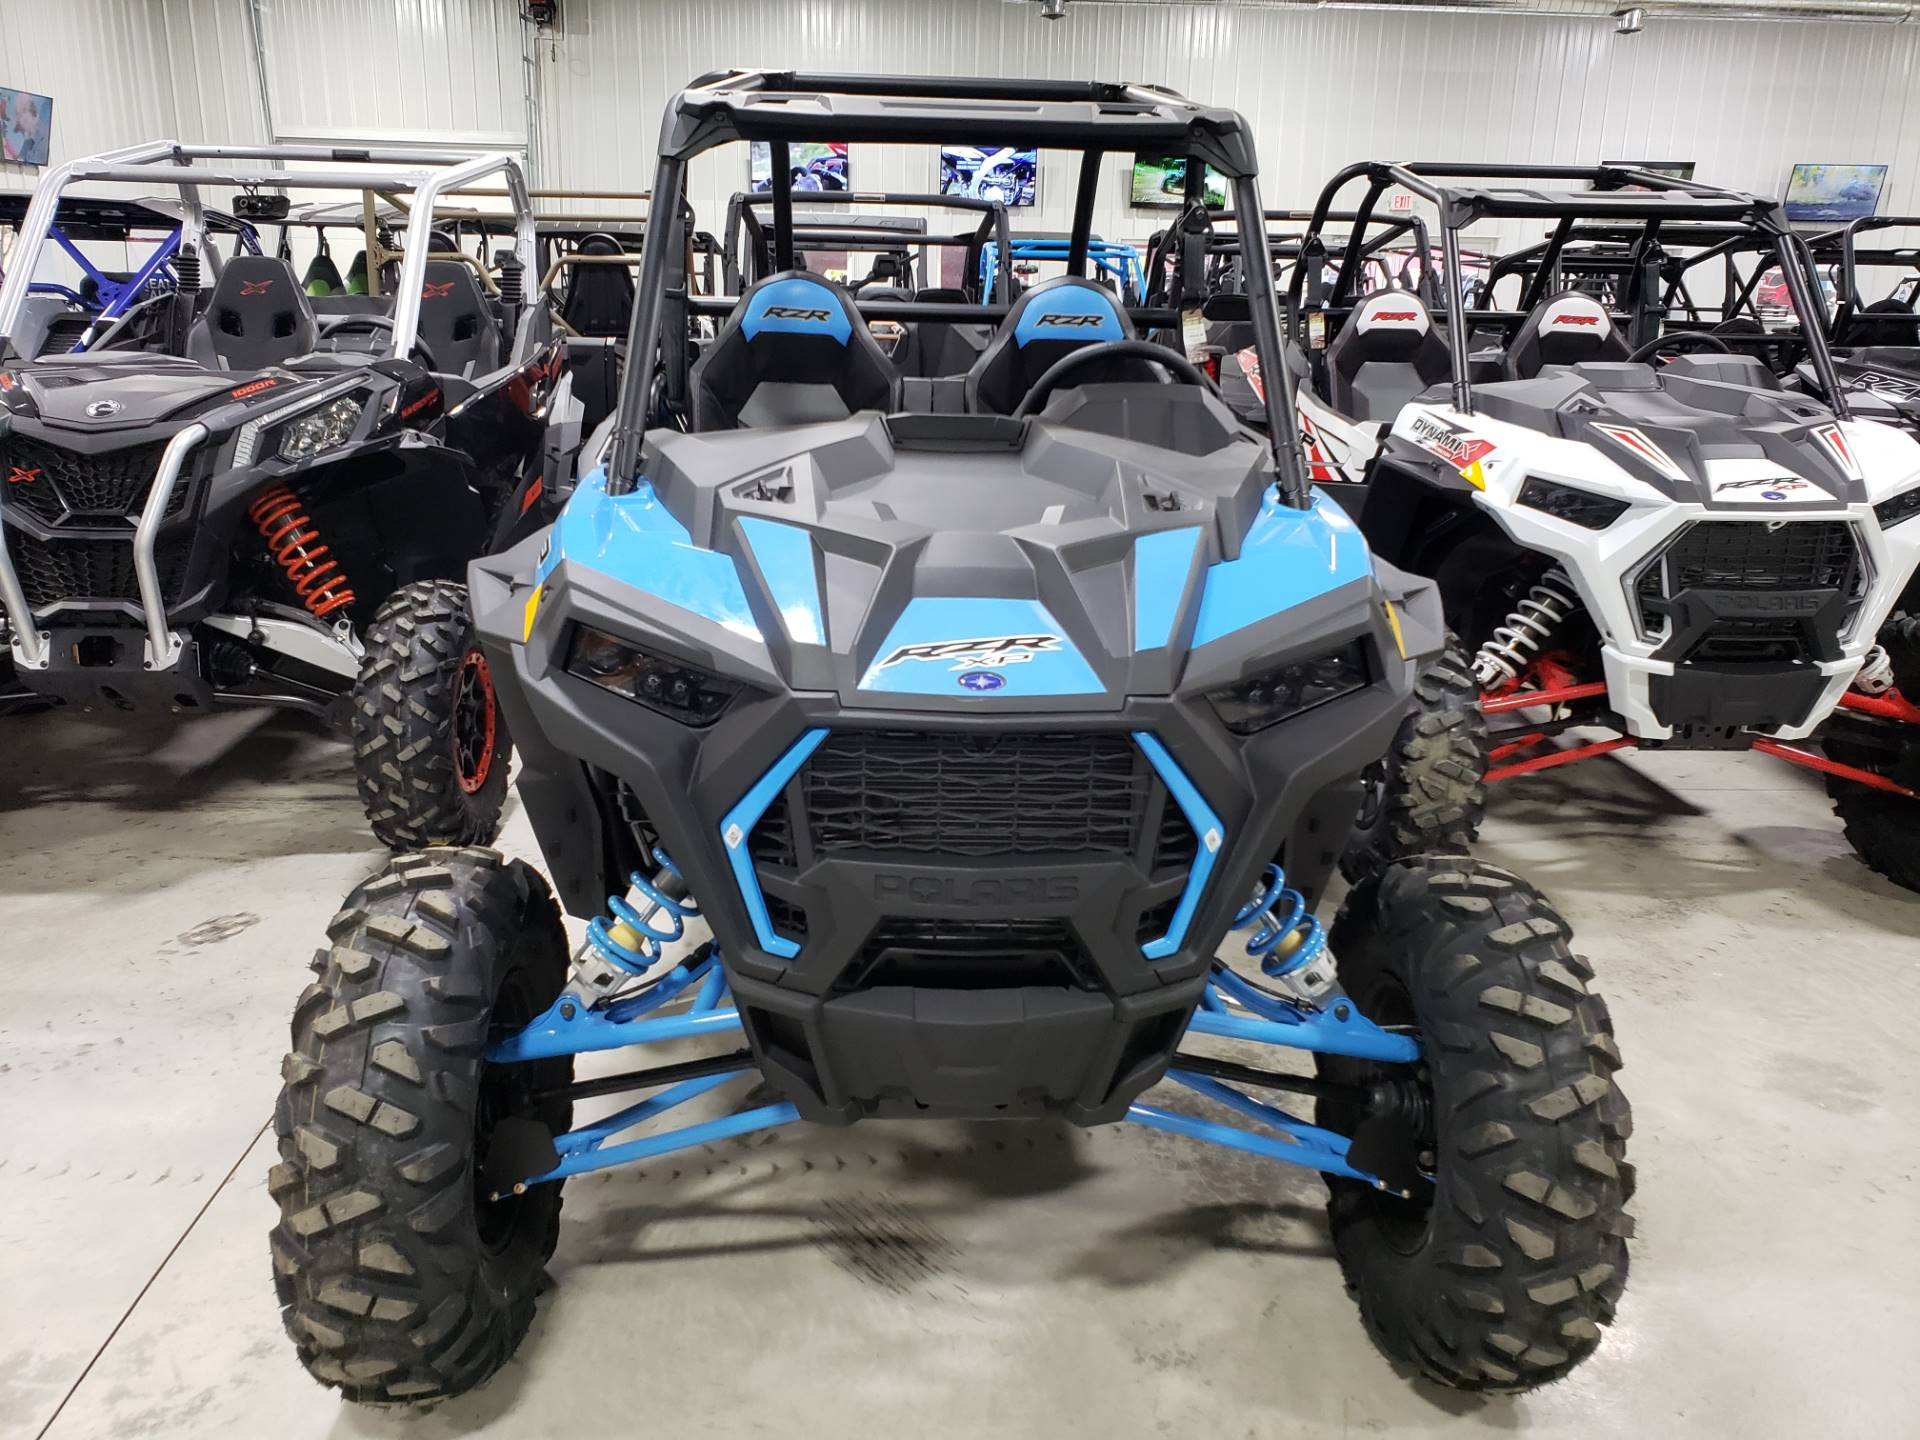 2020 Polaris RZR XP 1000 in Cambridge, Ohio - Photo 2